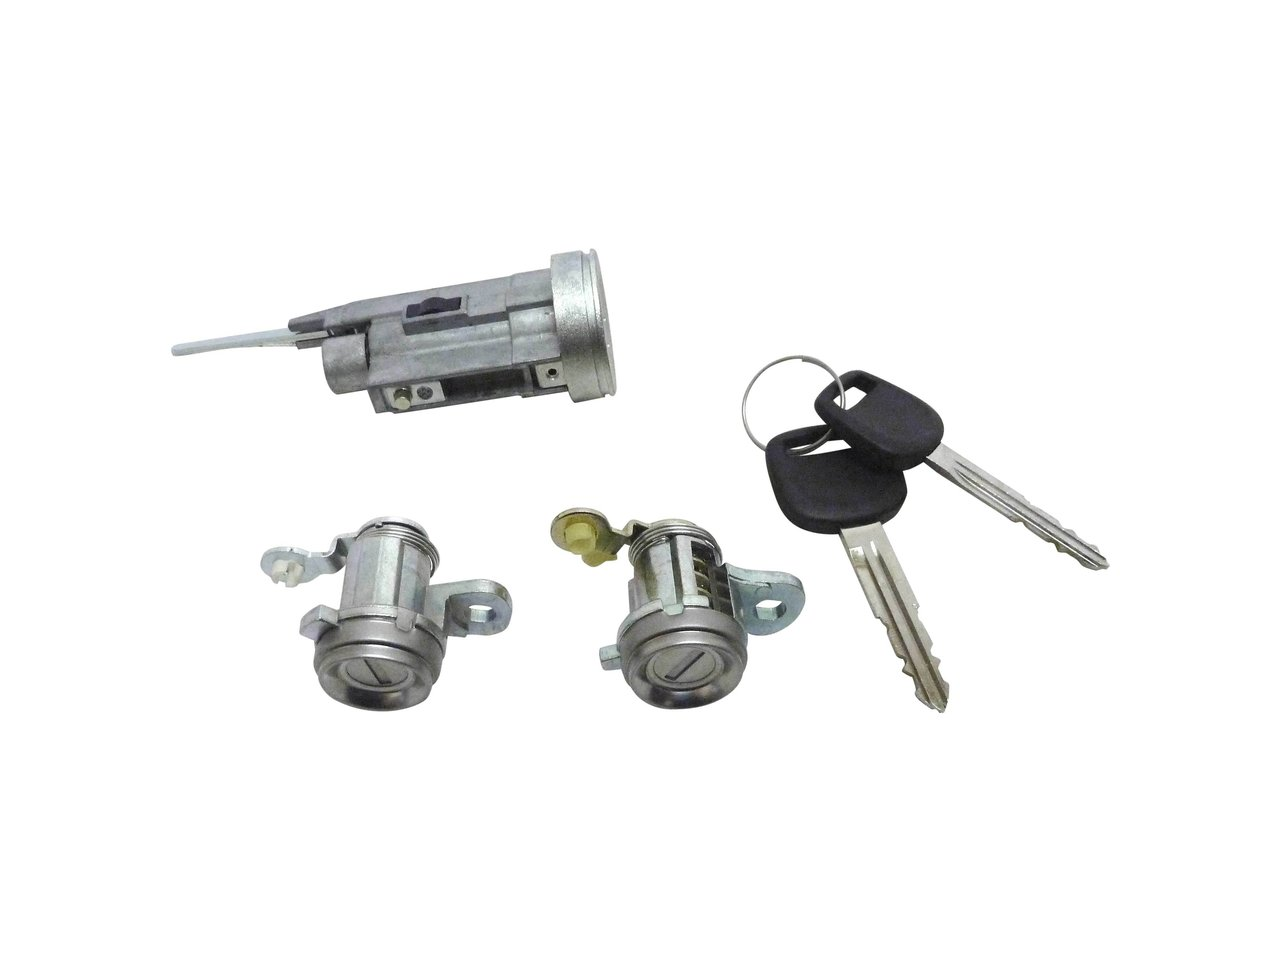 Ignition Amp Door Lock Barrel Amp Key Set Suitable For Landcruiser 80